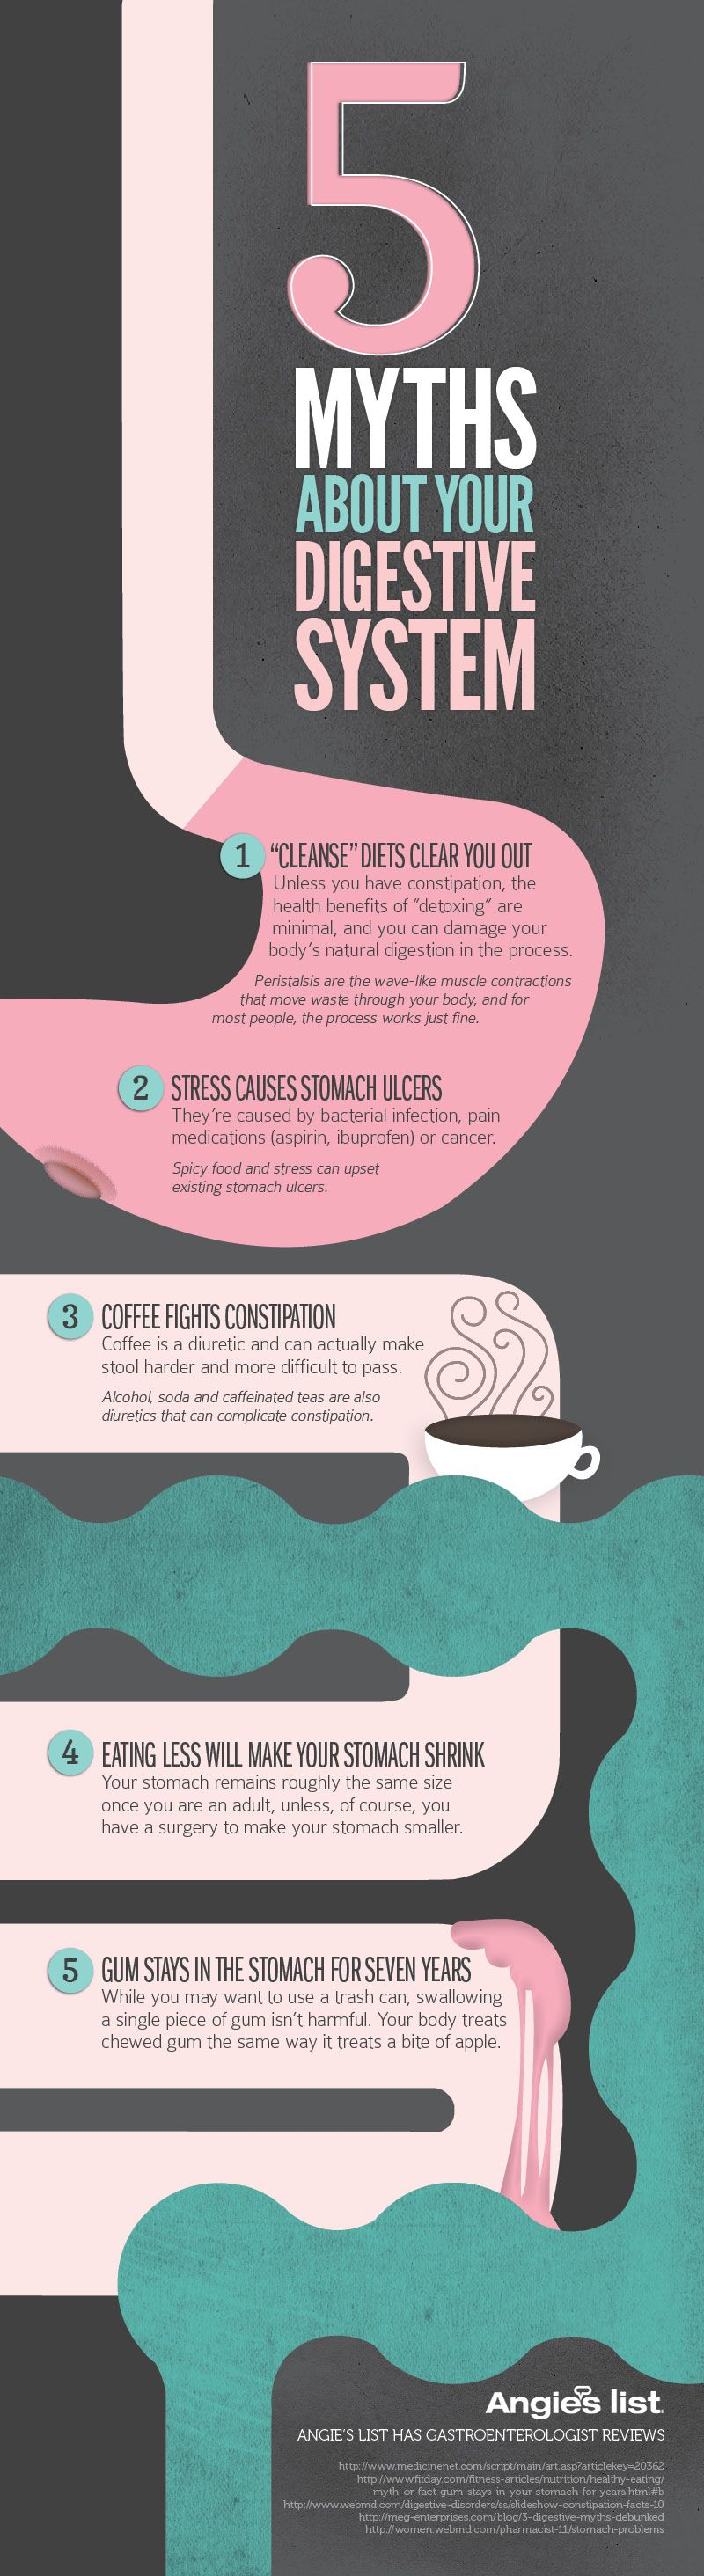 Interesting Facts About the Digestion System